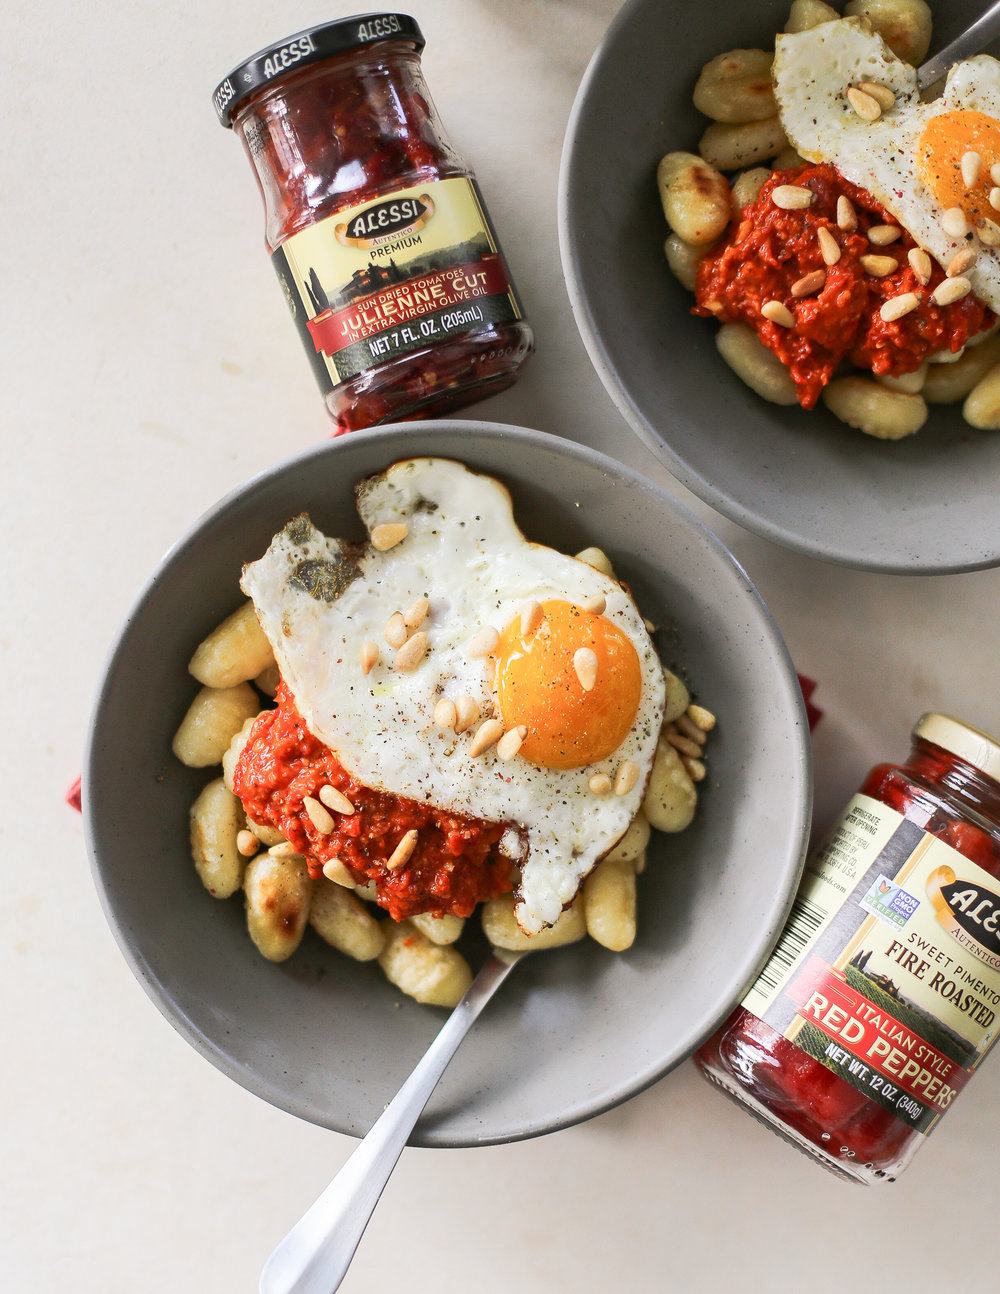 Date Night Gnocchi with Red Pepper & Sun Dried Tomato Pesto | Set the Table #AlessiWay http://bit.ly/AlessiSpring19